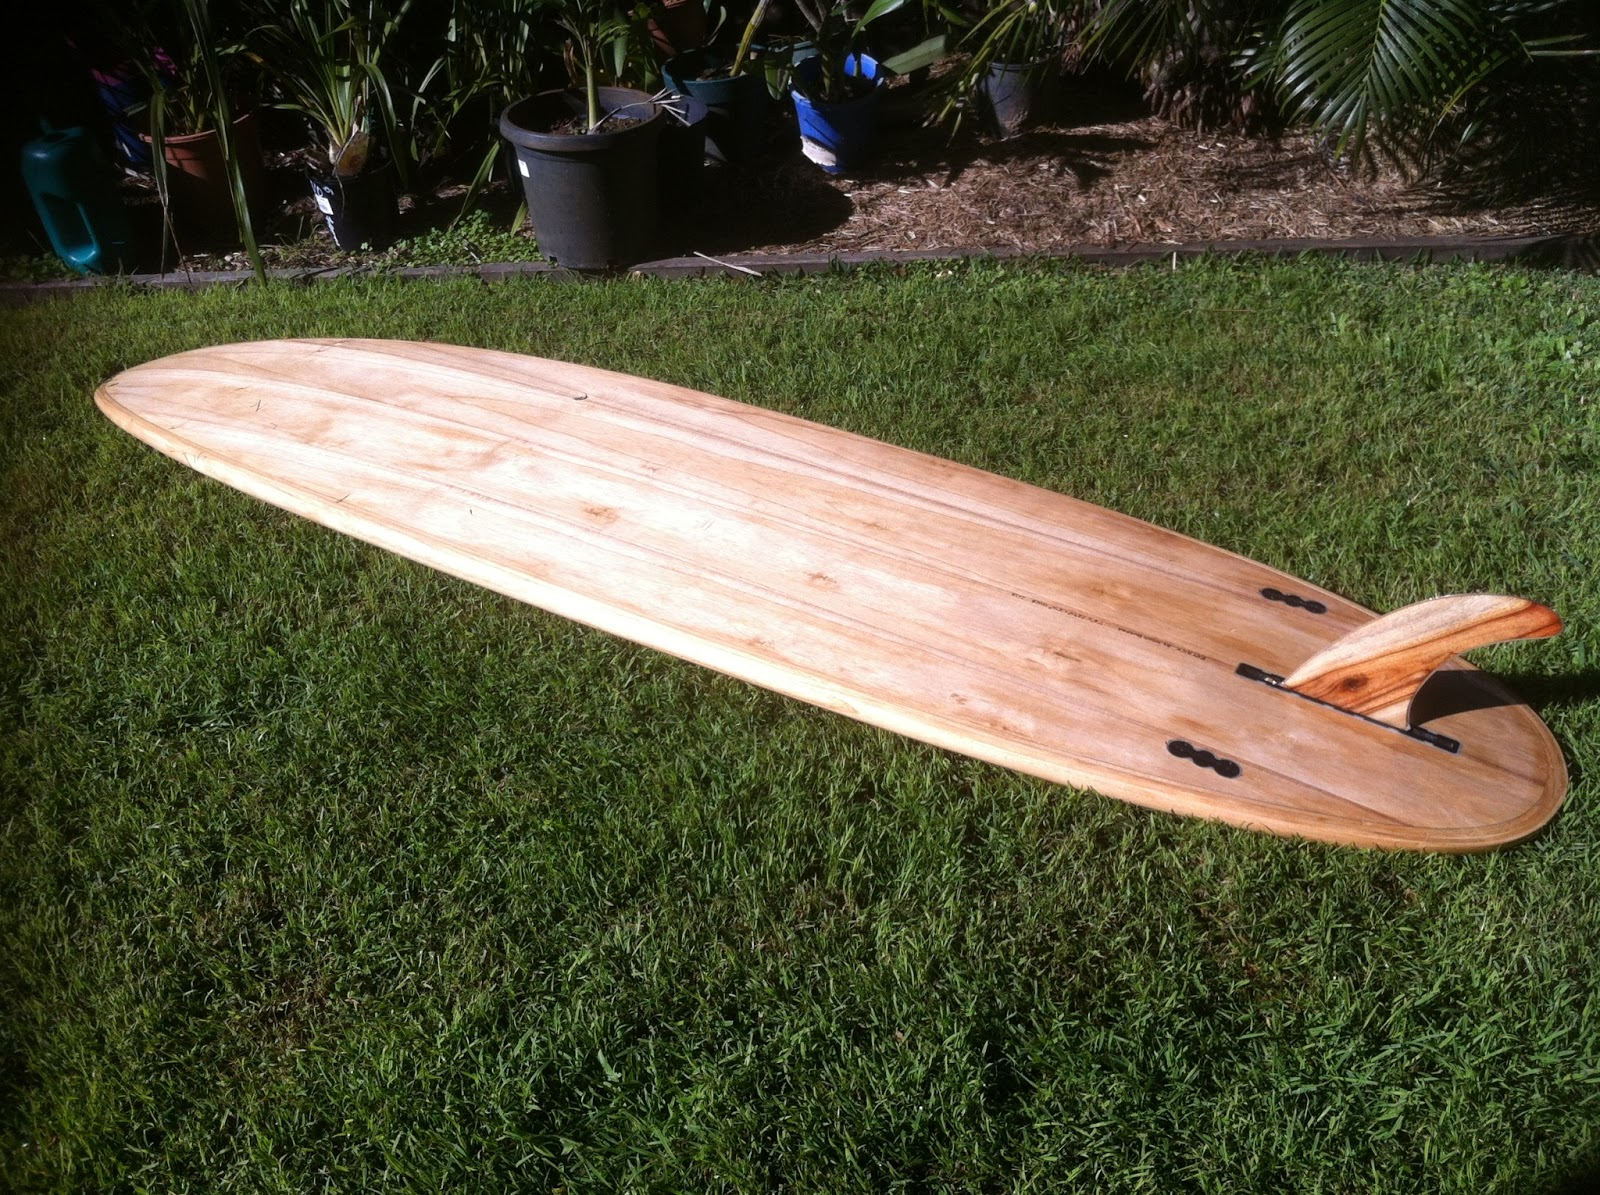 Wood buddha building wood surfboards building a hollow wooden hollow wooden surfboard pronofoot35fo Image collections